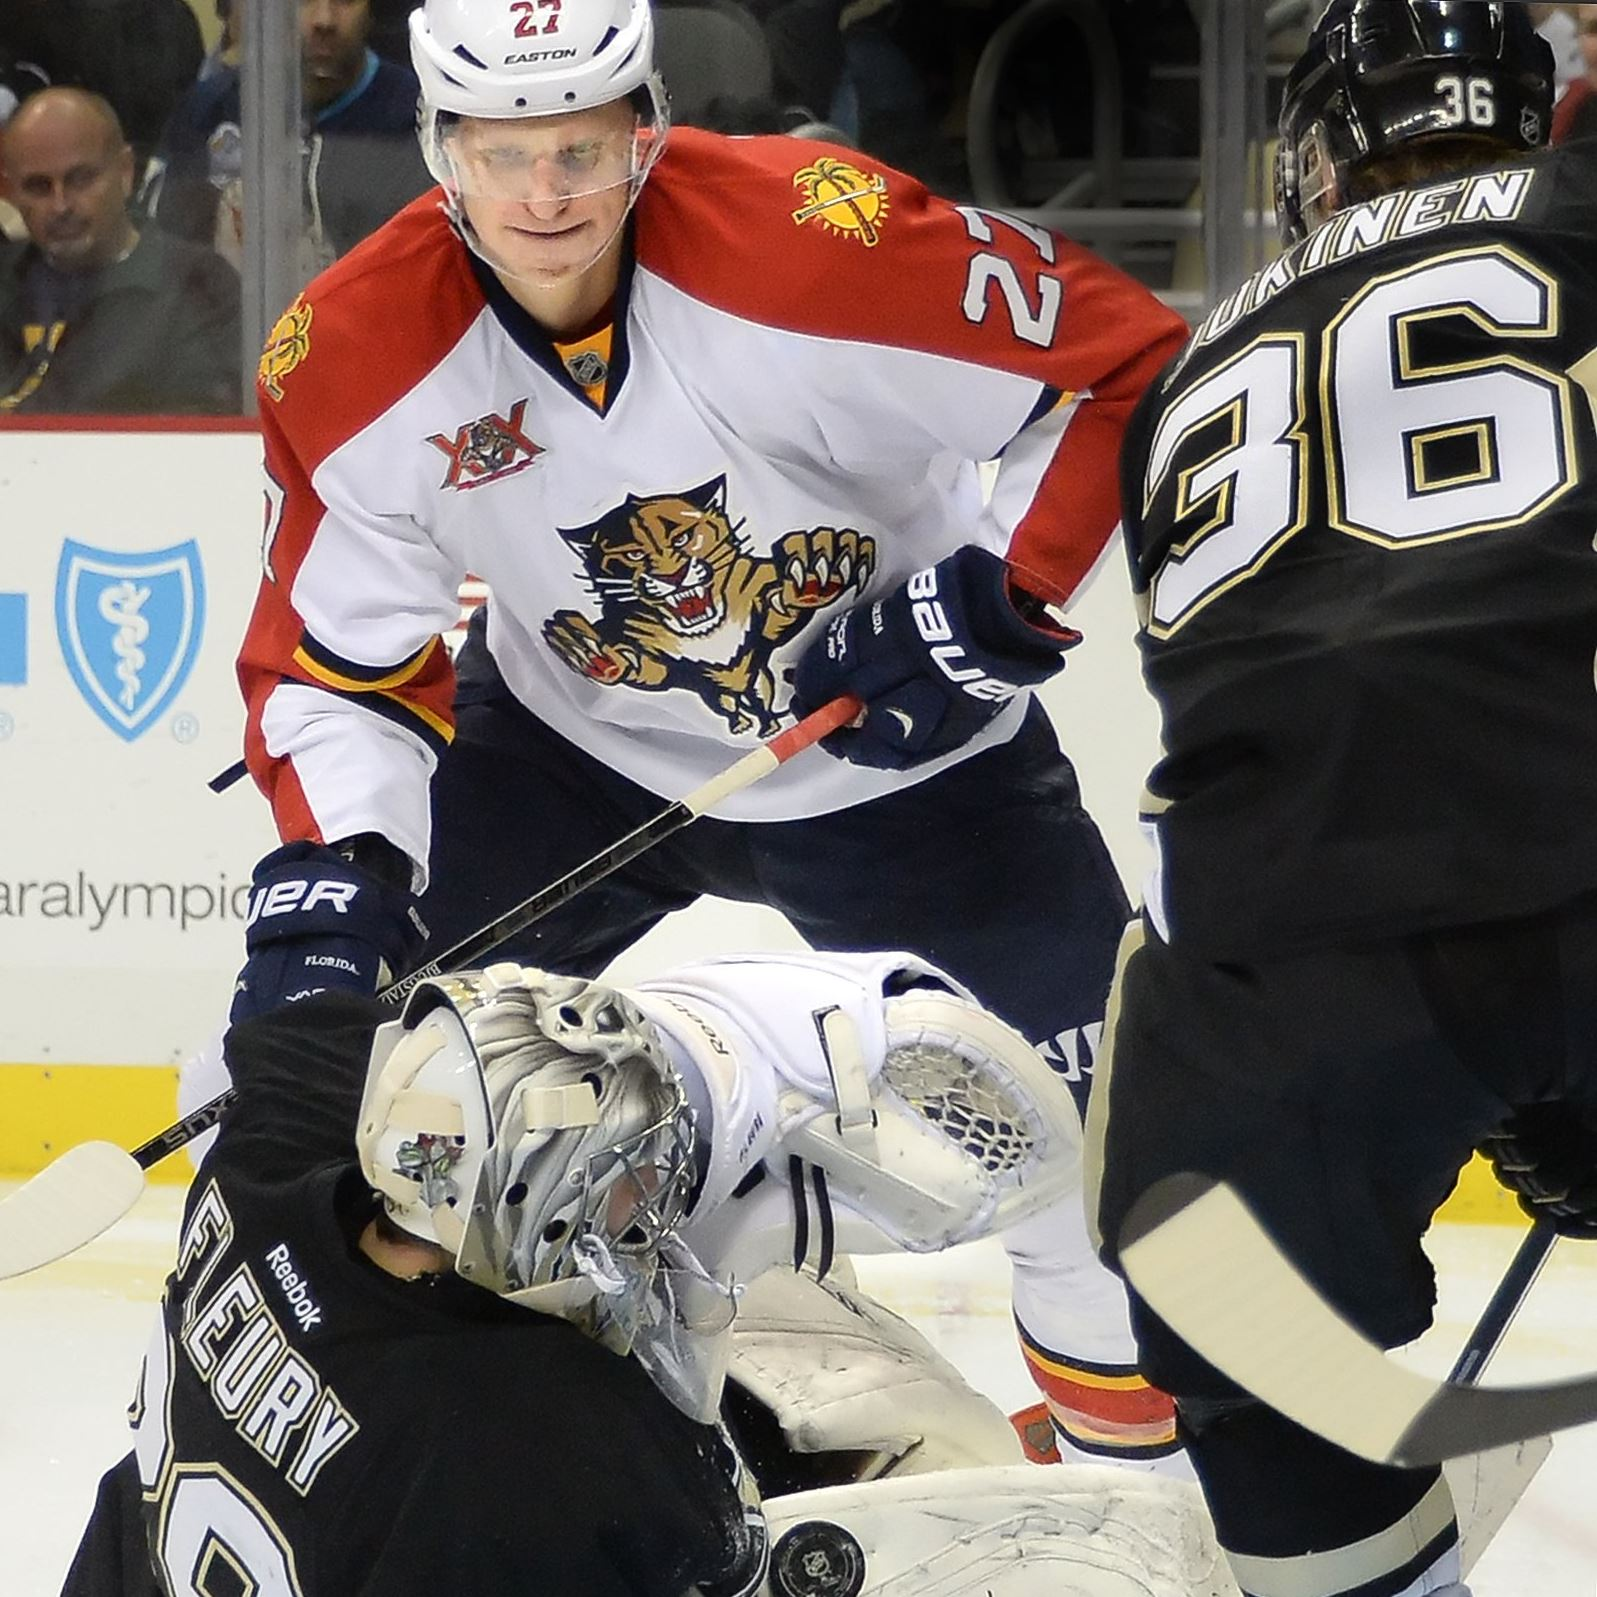 School Shooting In Pittsburgh Today: Penguins Notebook: Panthers Center Has Pittsburgh Ties